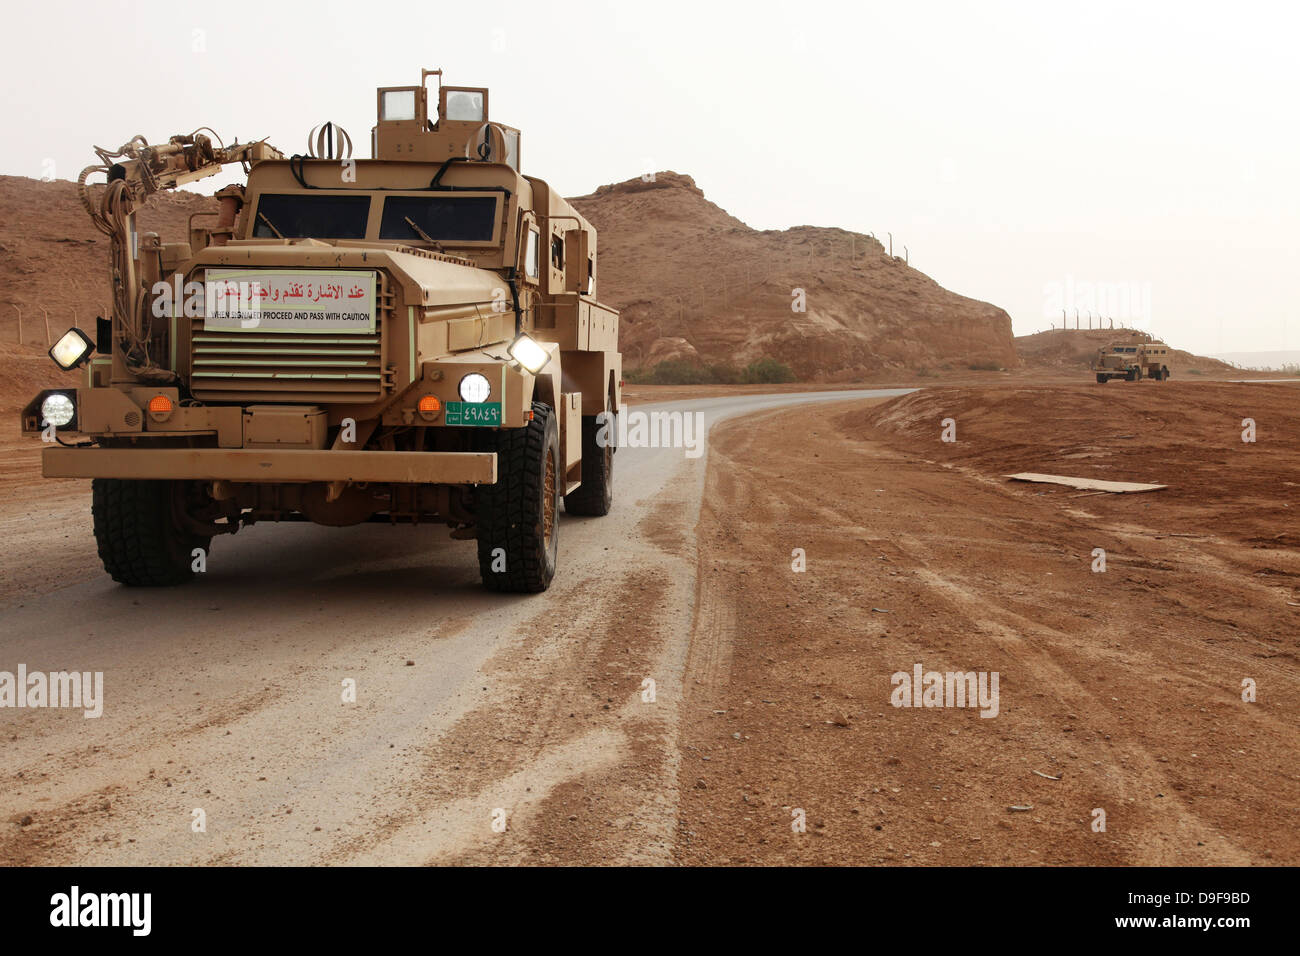 Cougar armored fighting vehicles in Iraq. - Stock Image